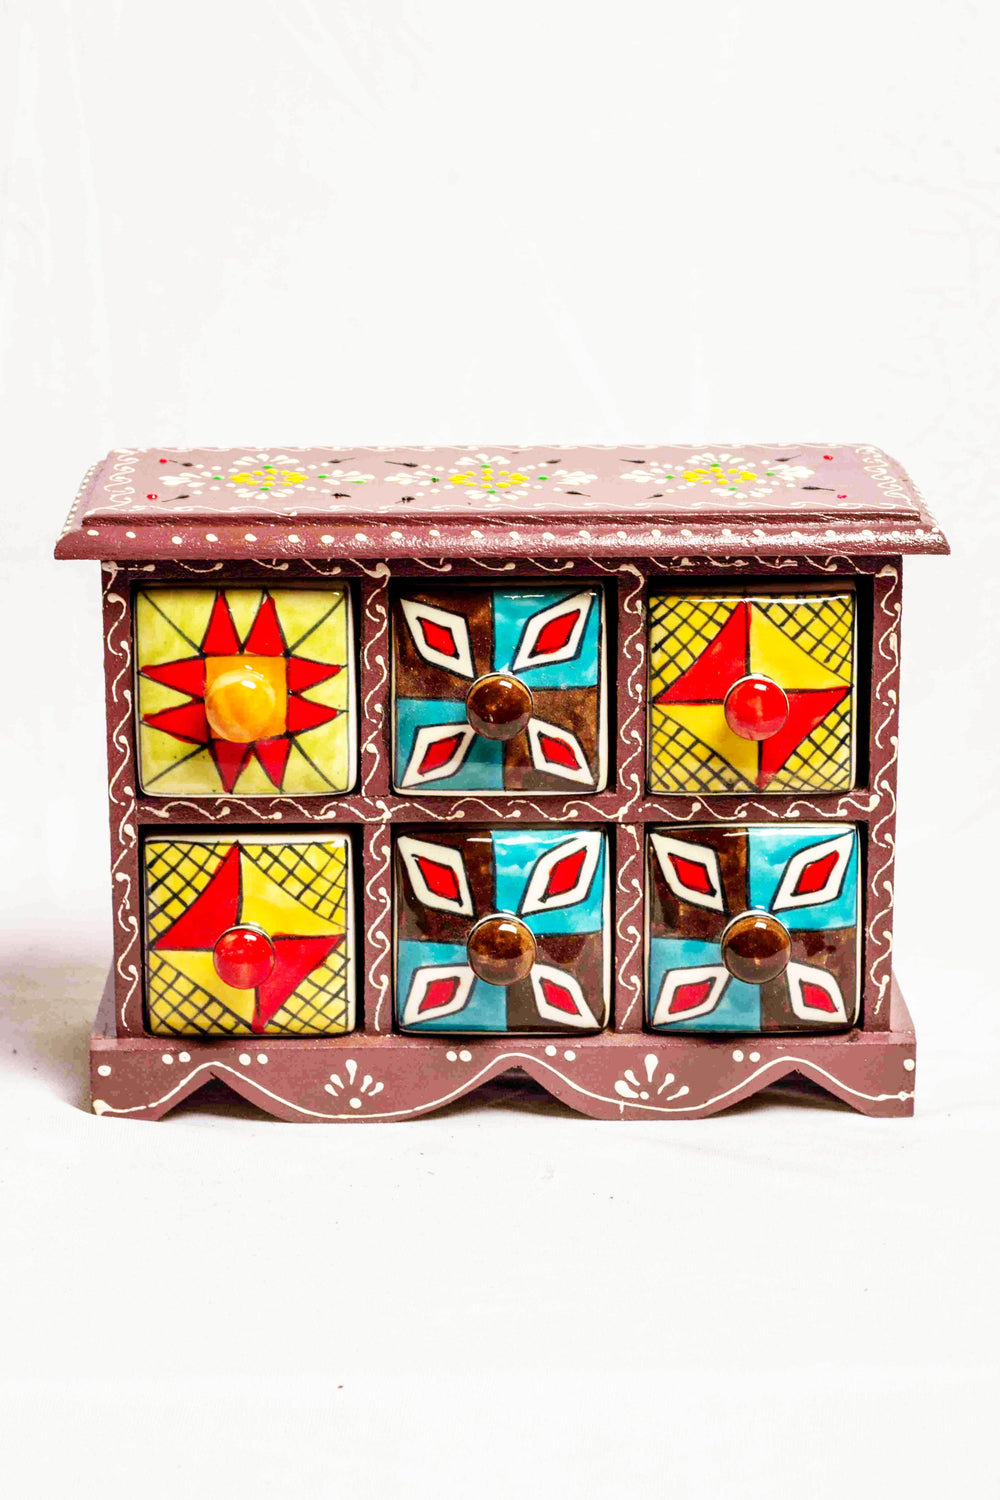 Chest of drawers in a brown framed wooden box with painted motifs, with 6 ceramic drawers